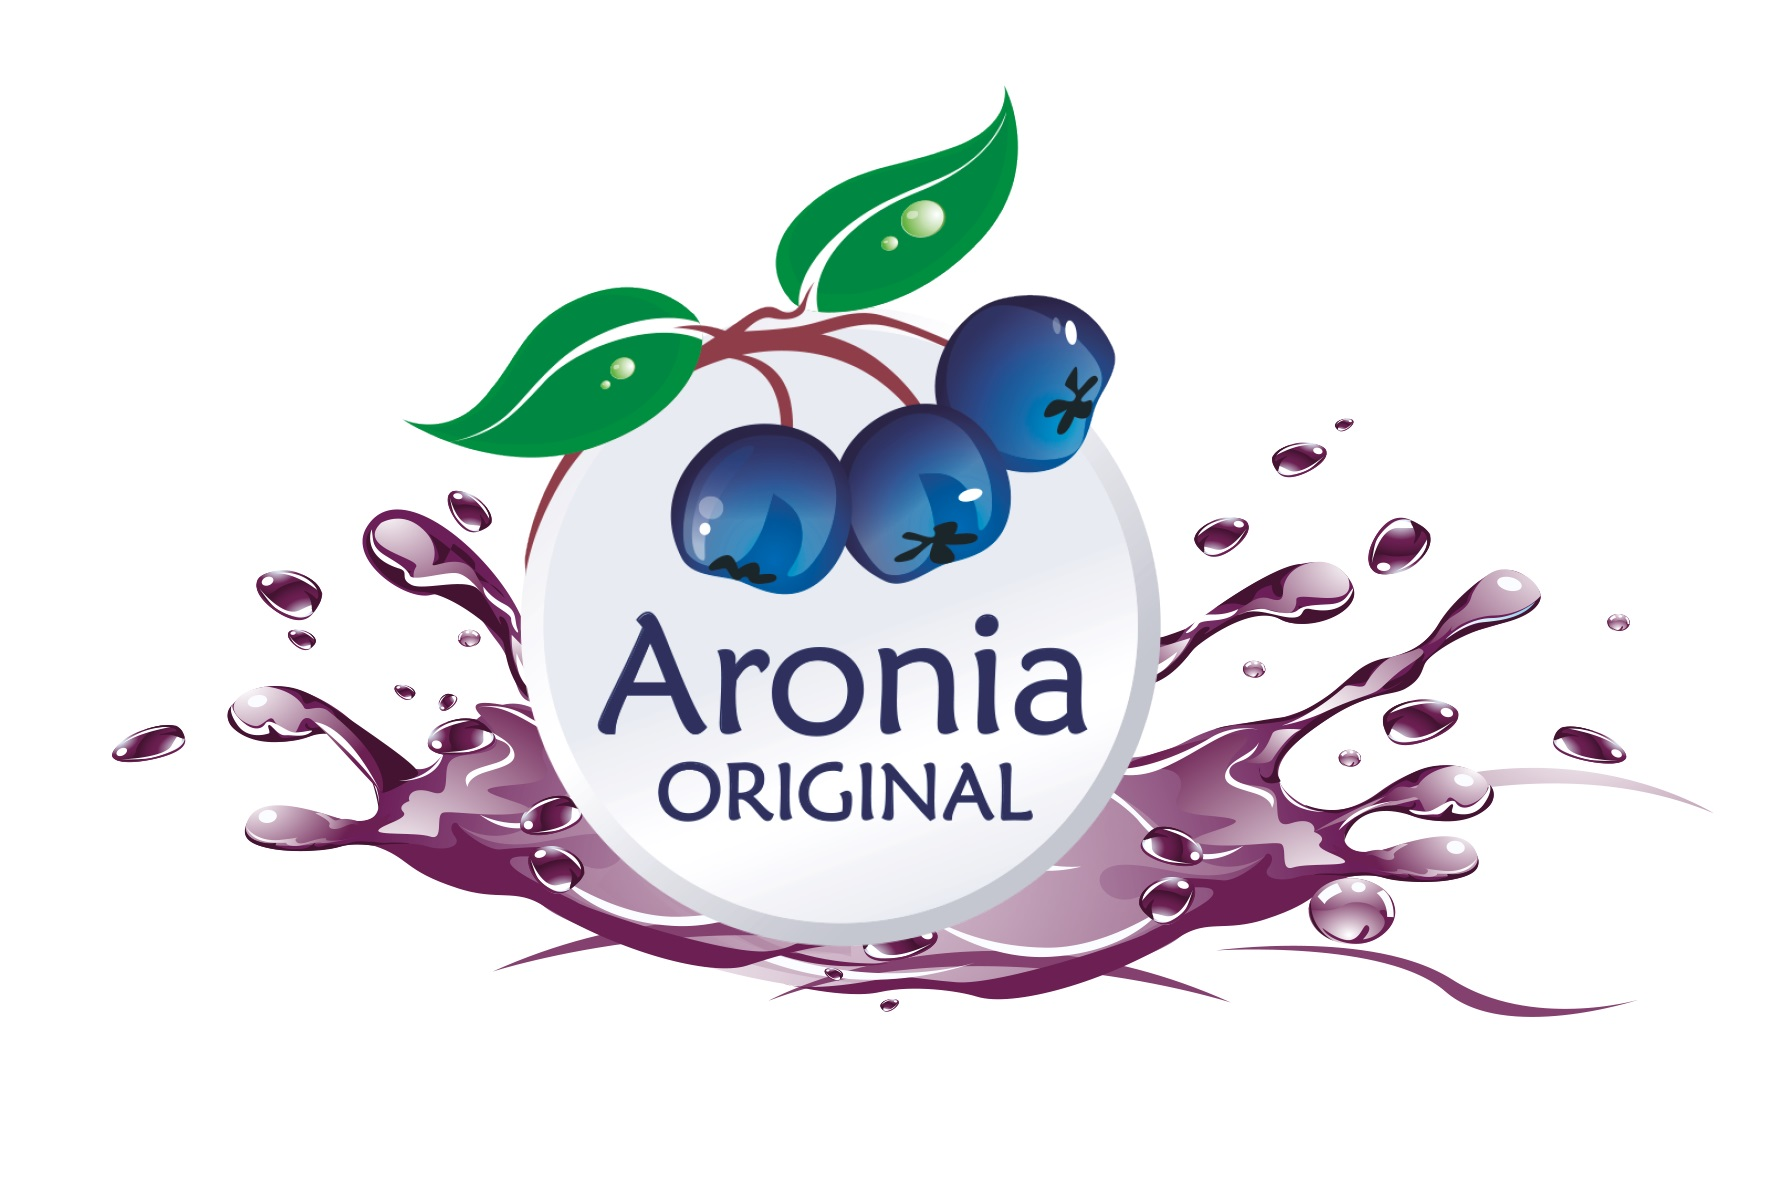 Aronia Original Logo - new with splash of juice